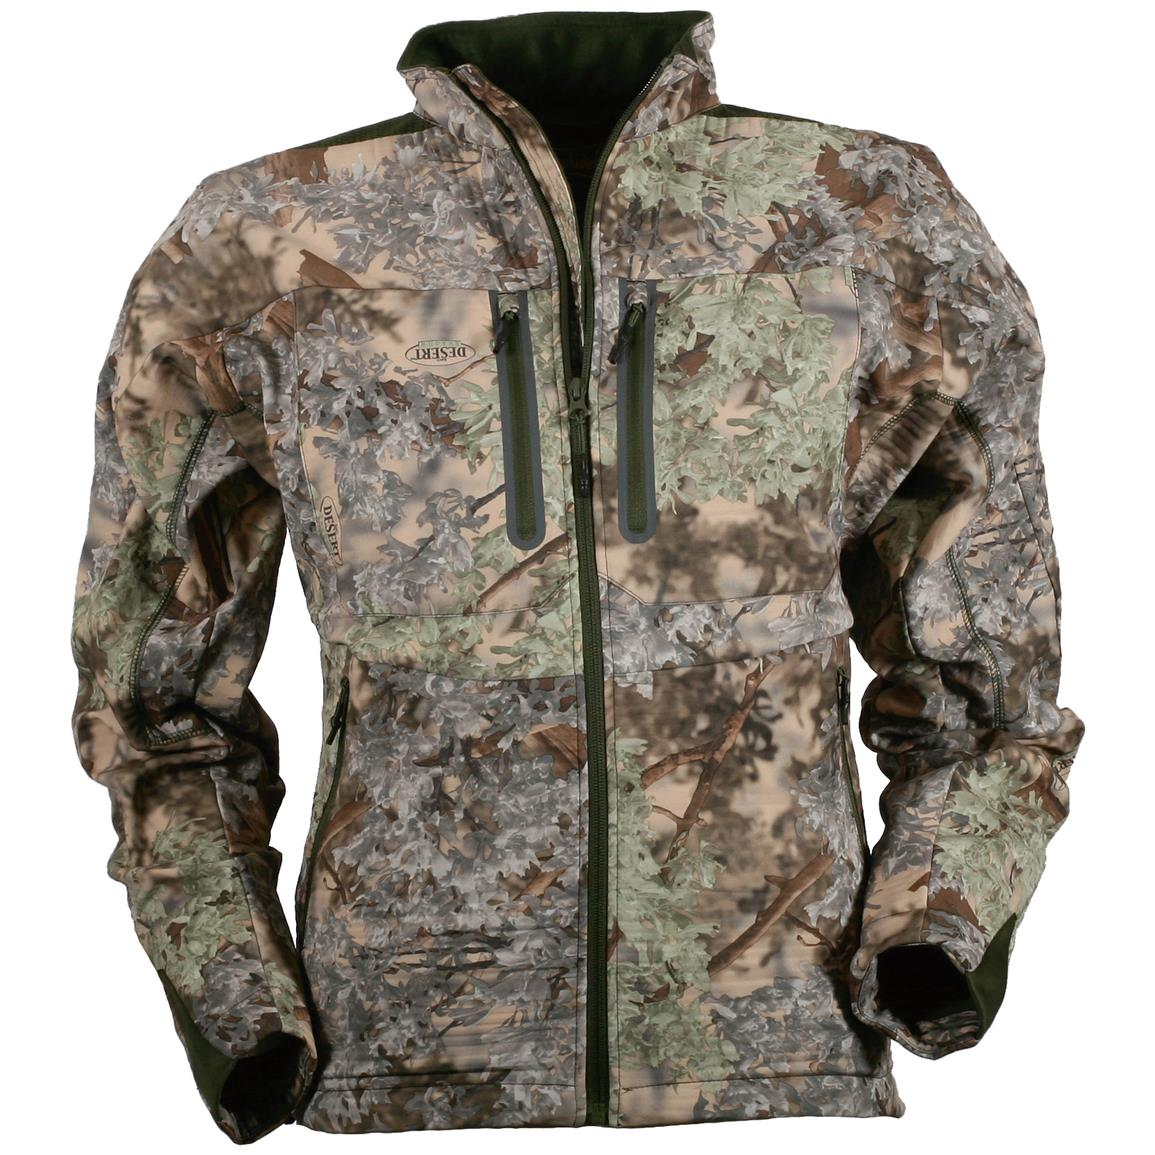 Men's Slam Seeker Camo Fleece Hunting Jacket, Desert Shadow